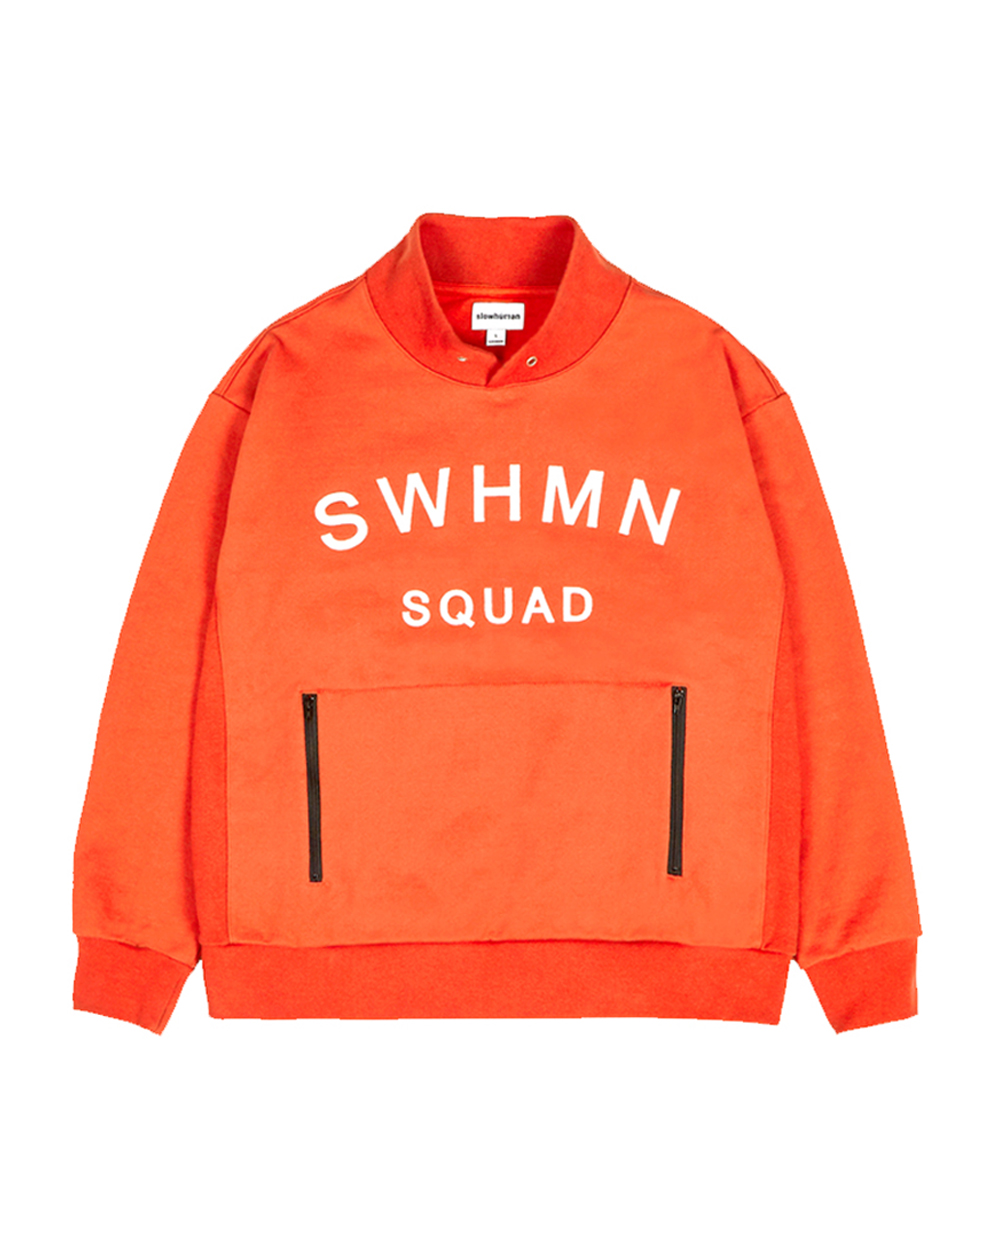 SWHMN SQUAD COLLAR SWEAT SHIRT